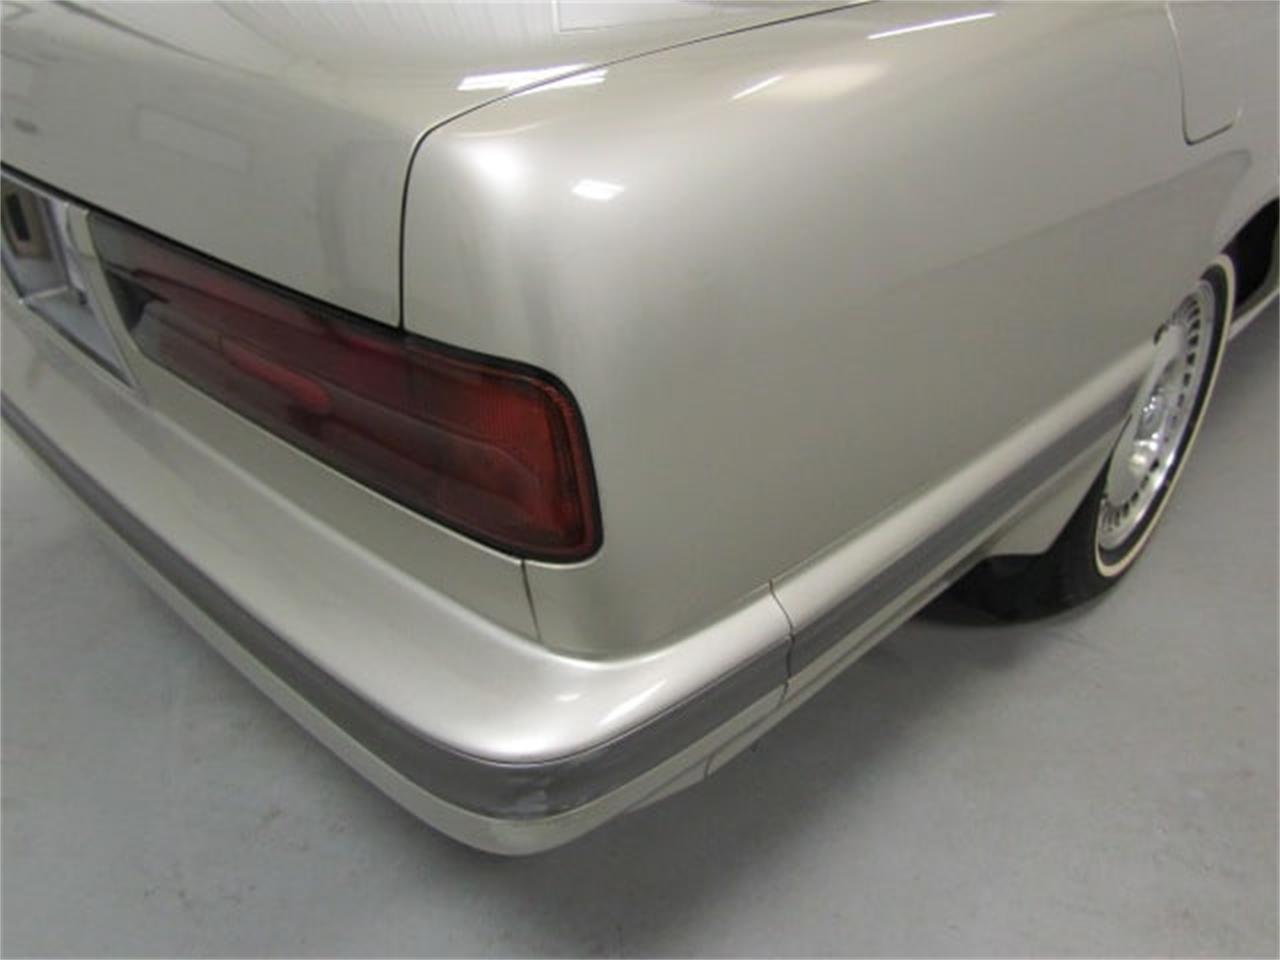 Large Picture of '90 Nissan Cima - $6,900.00 Offered by Duncan Imports & Classic Cars - JZ2V